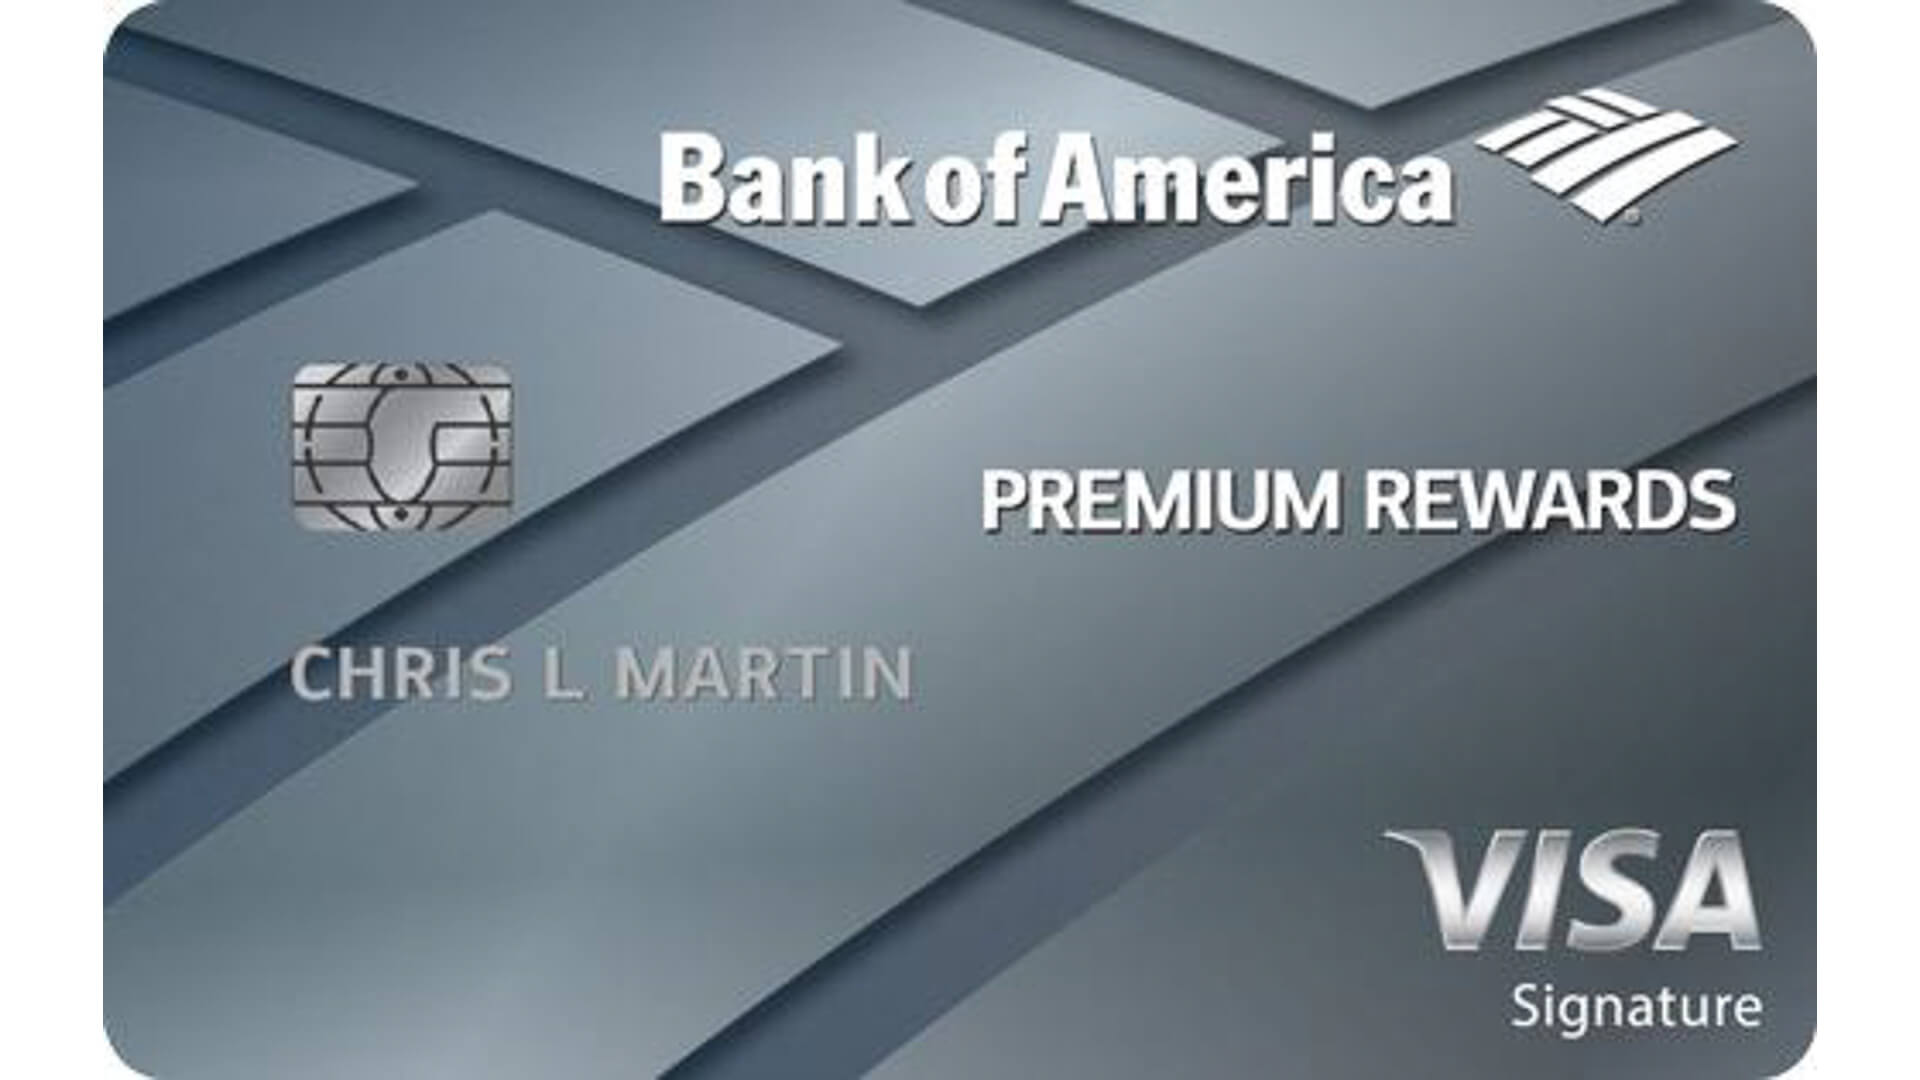 bank of america credit card application under review